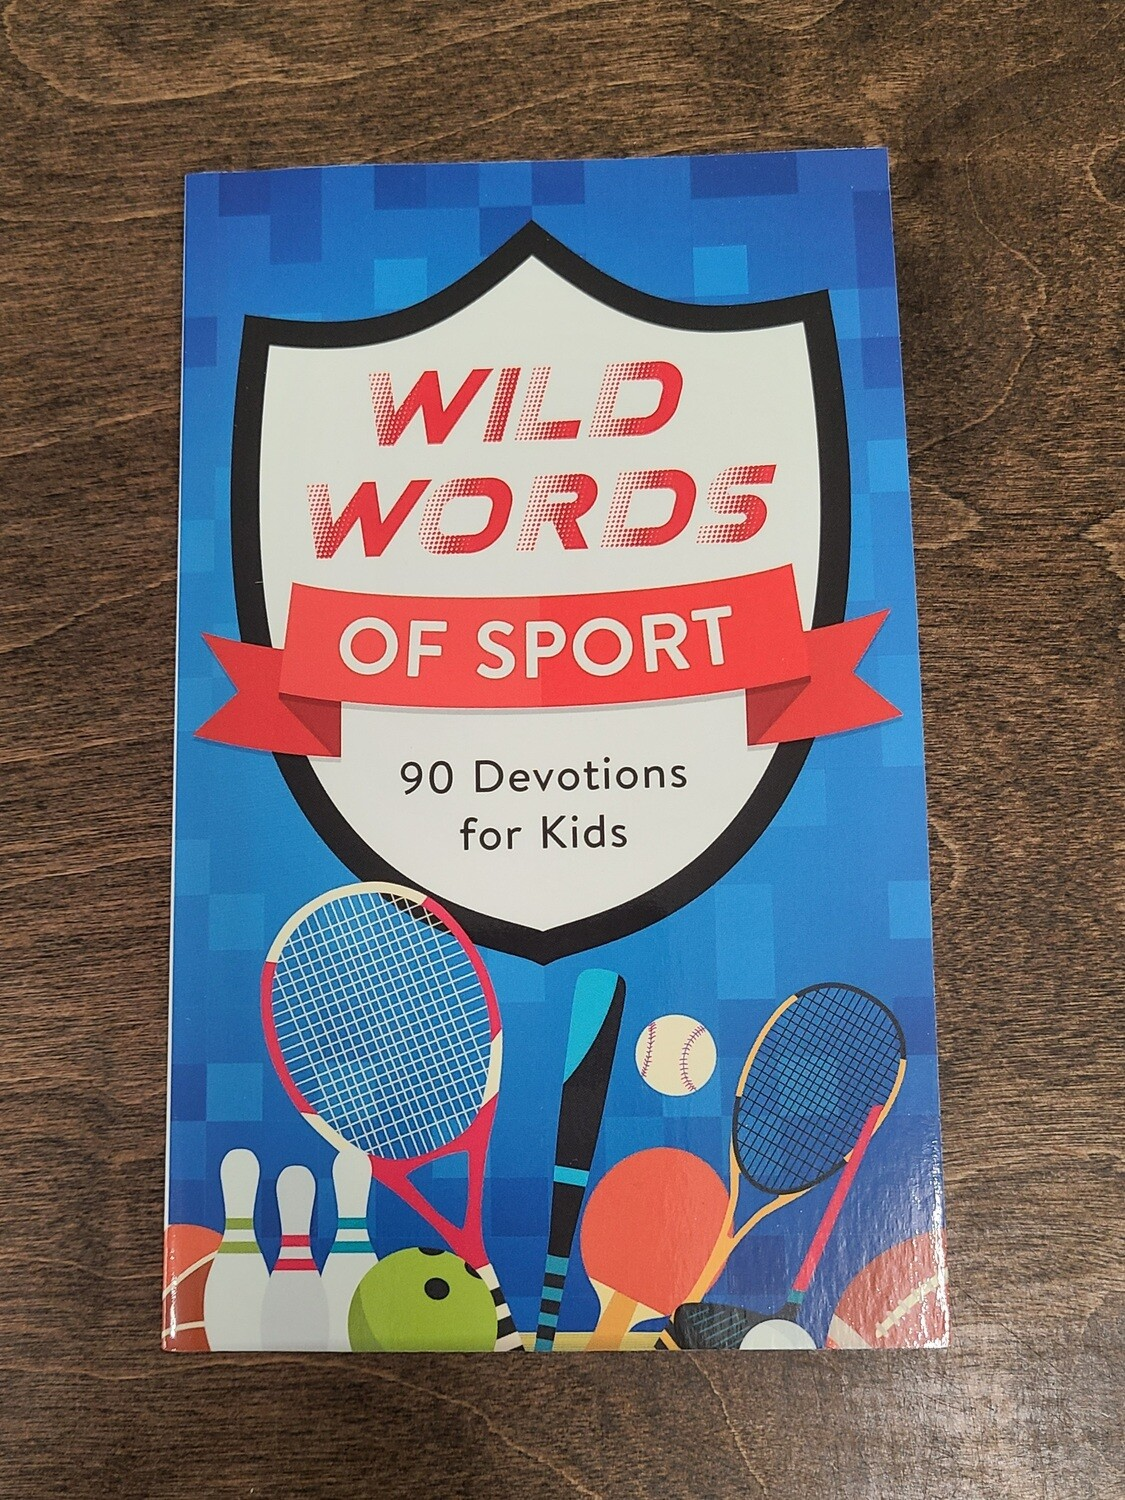 Wild Words of Sport: 90 Devotions for Kids by Tracy M. Sumner